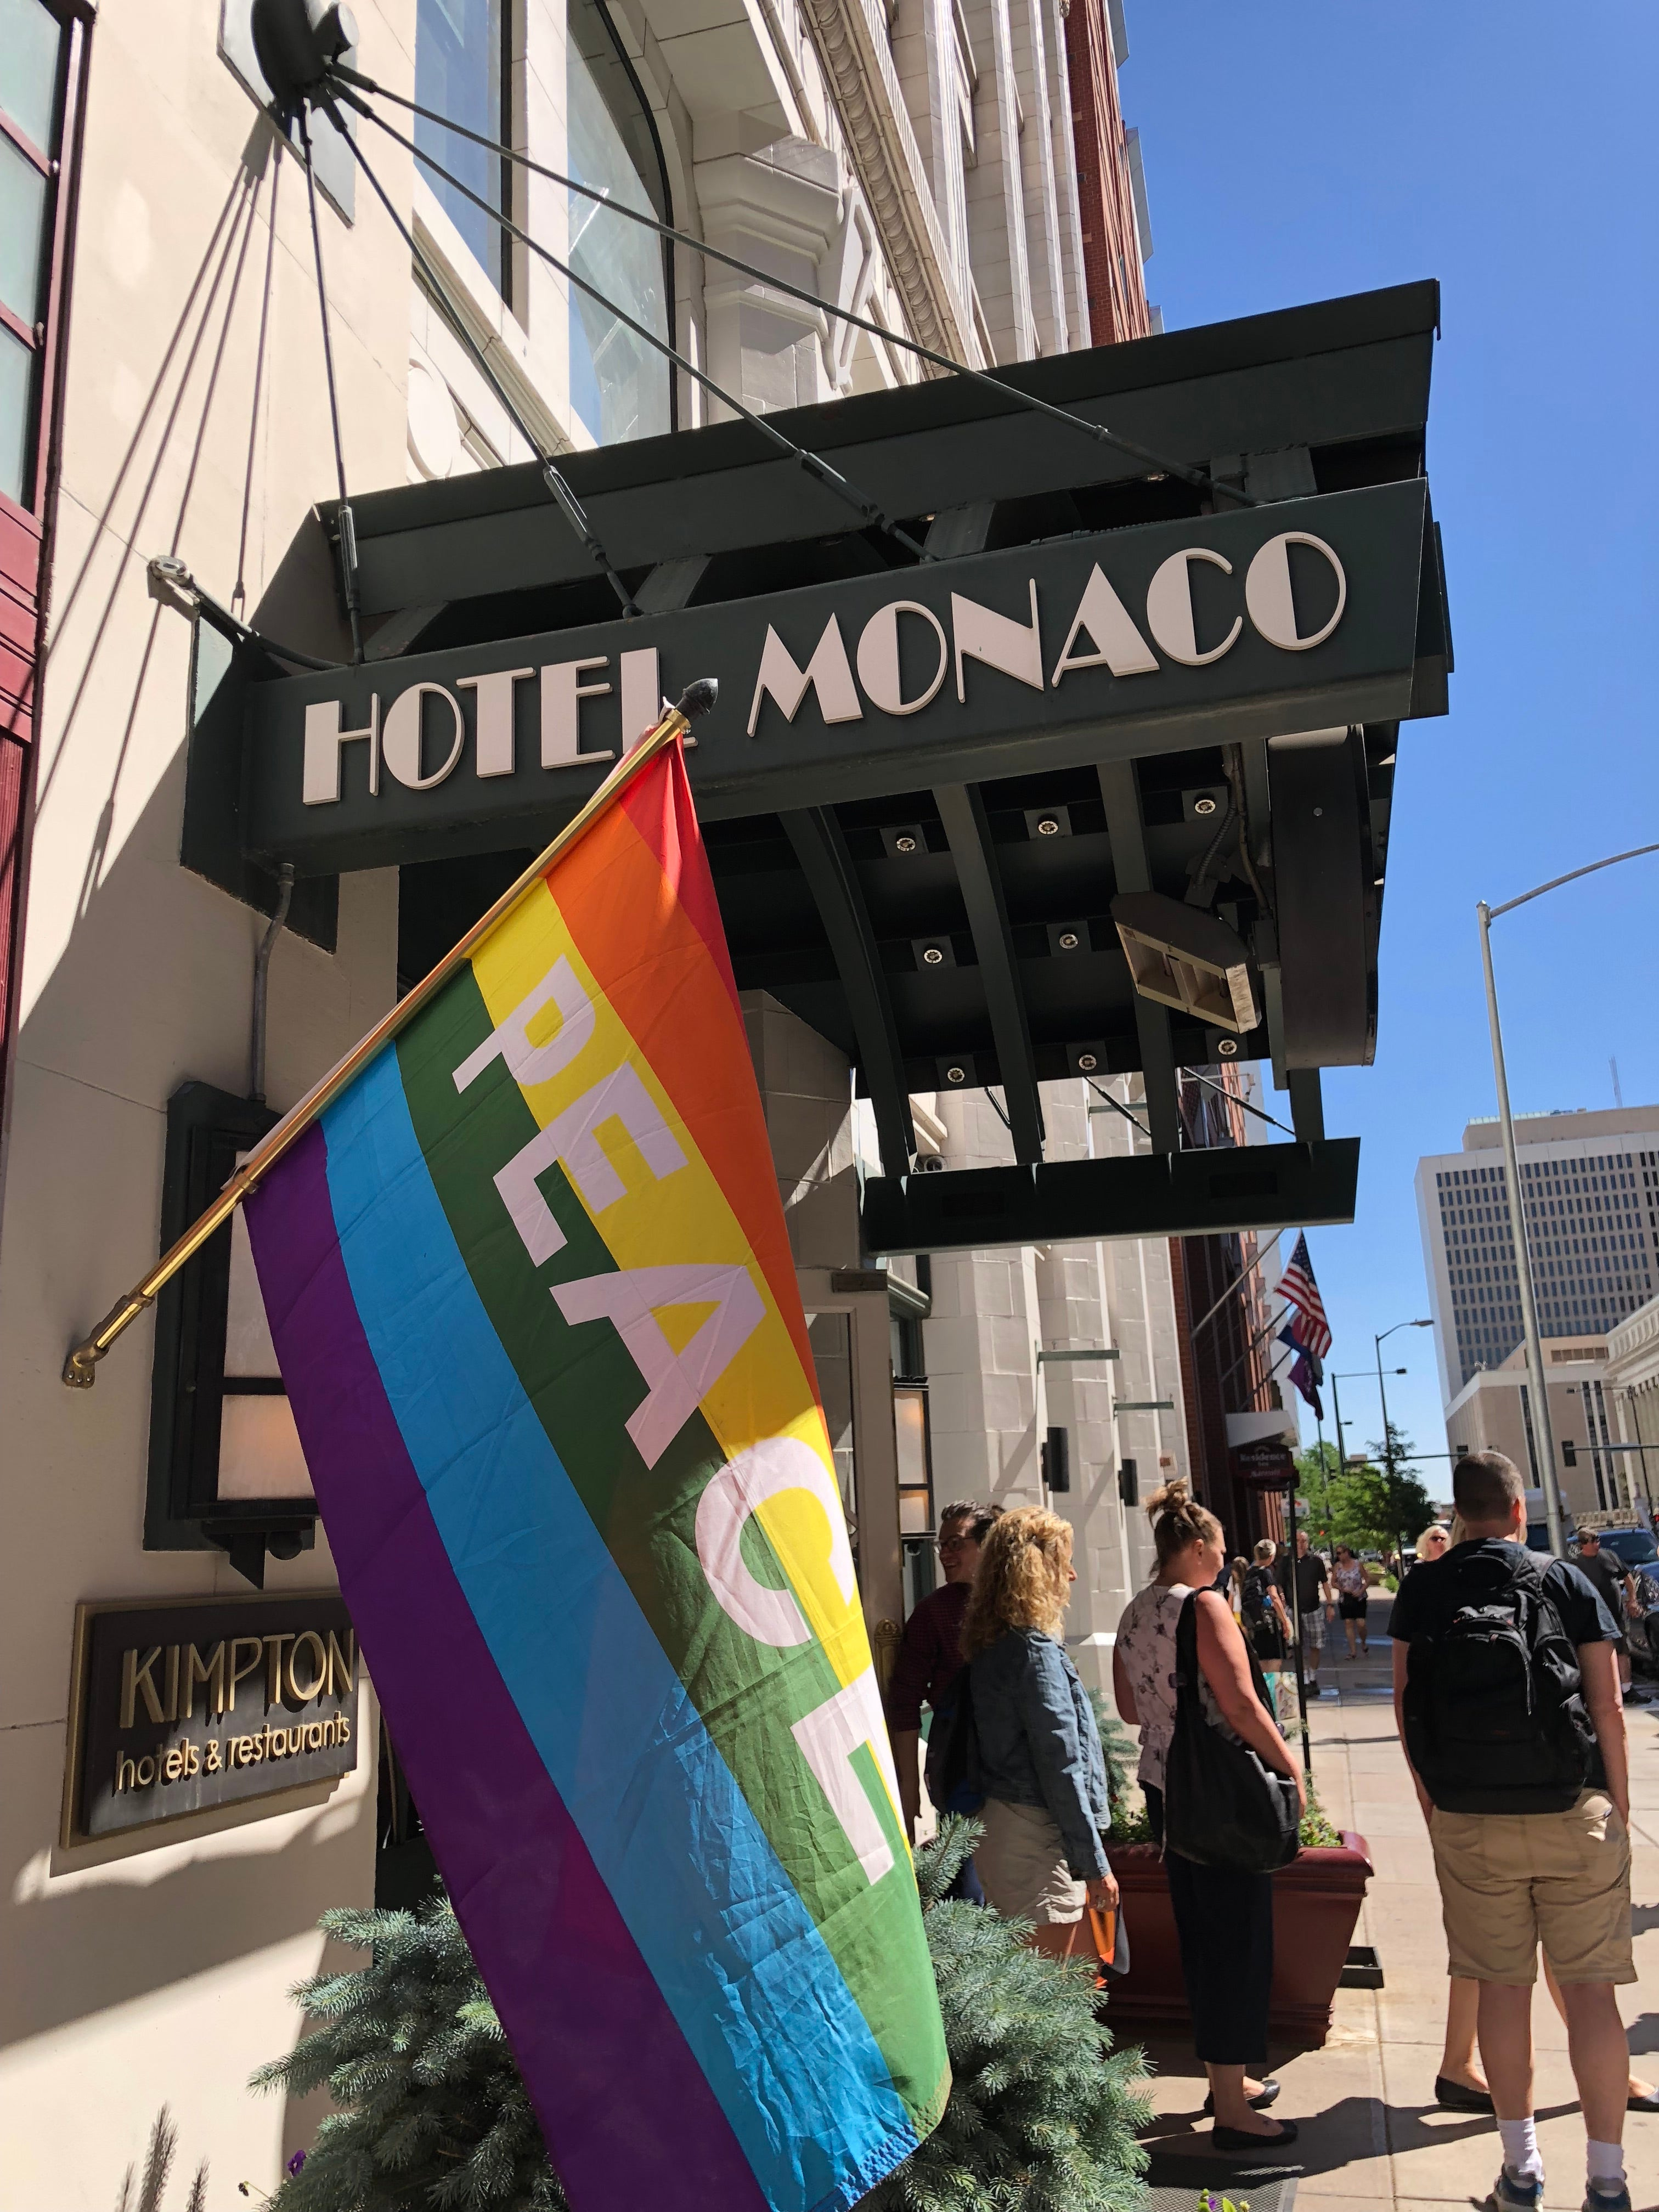 The Hotel Monaco Denver Is Located At 17th And Champa Street In Downtown A Former Railway Exchange Building When We Pulled Up Walked Through